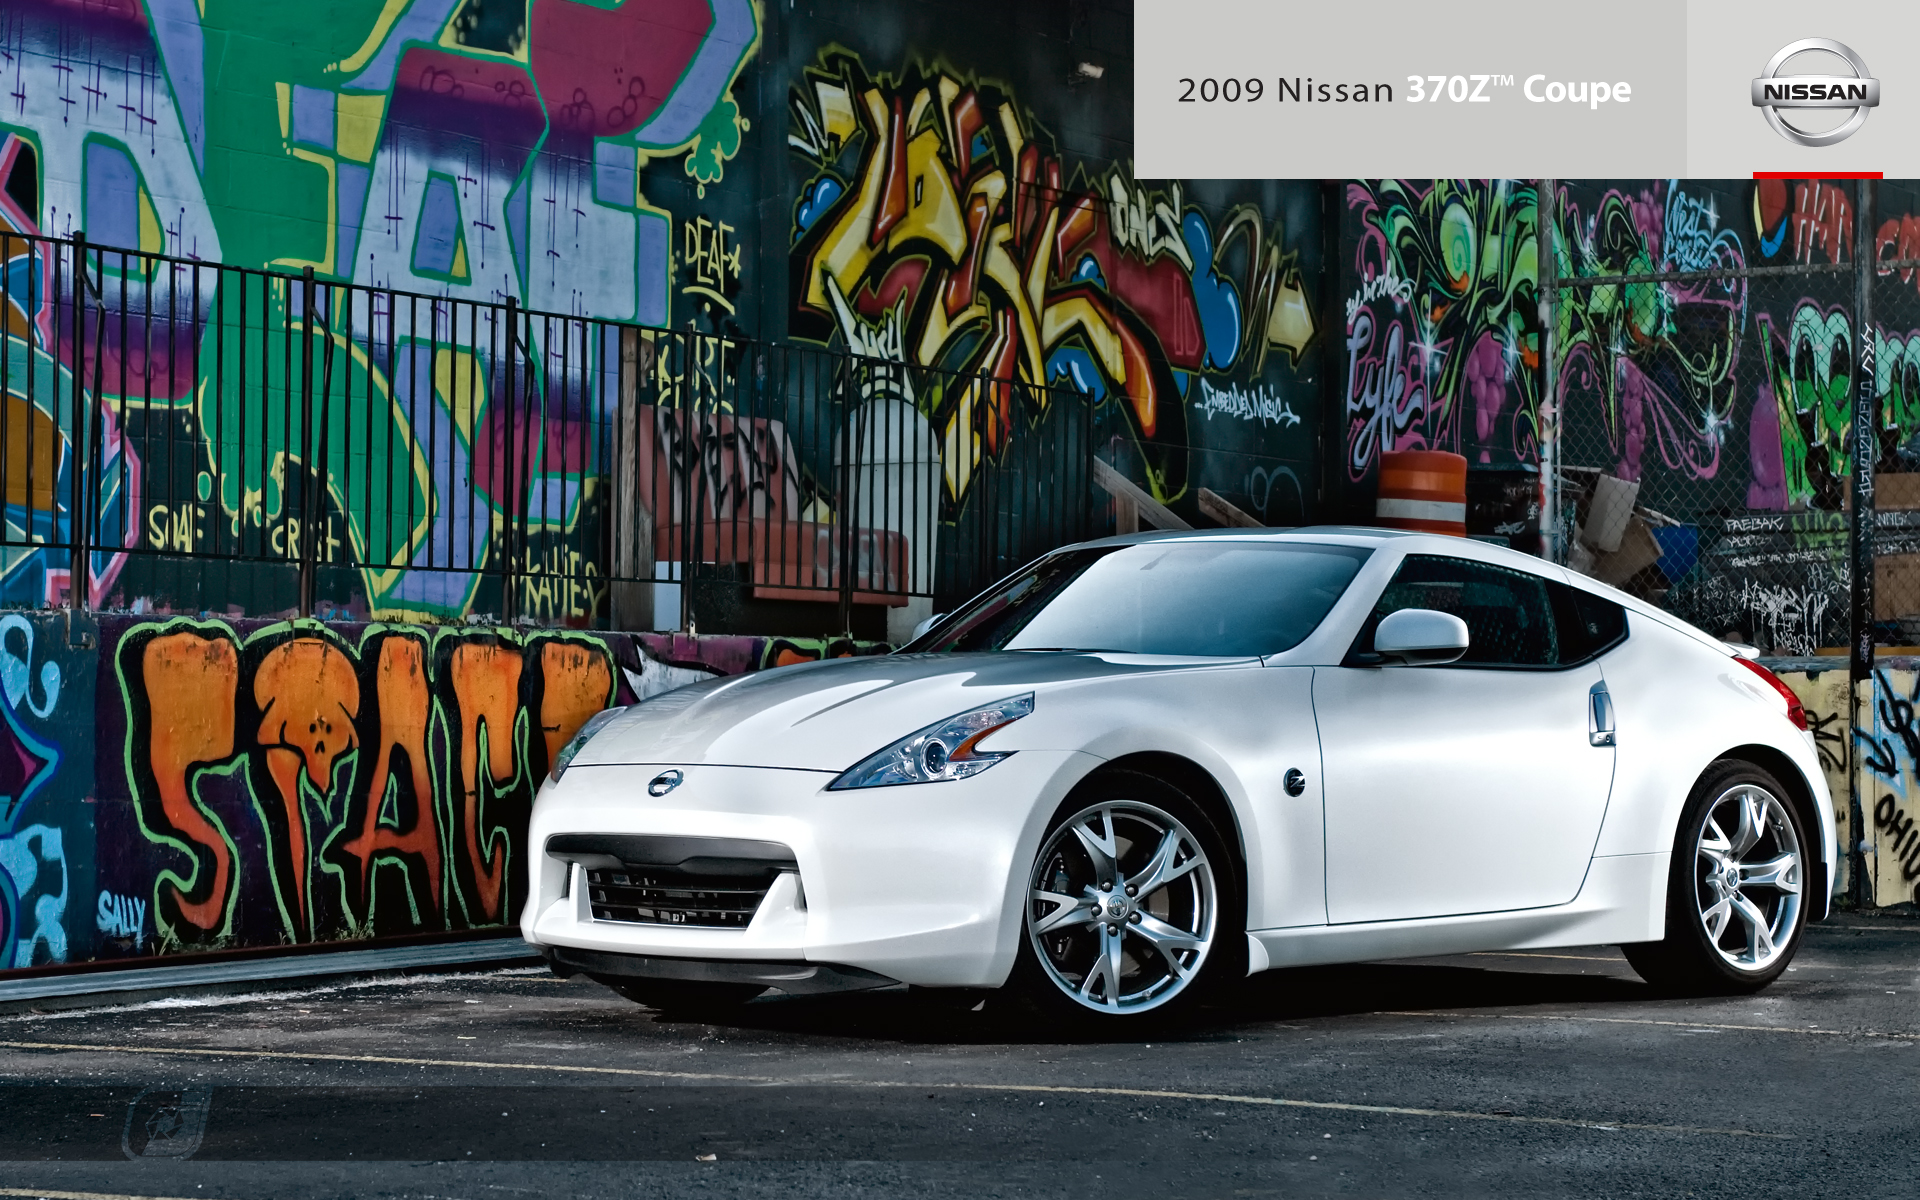 Nissan 370z Coupe Wallpaper Full Hd Pictures